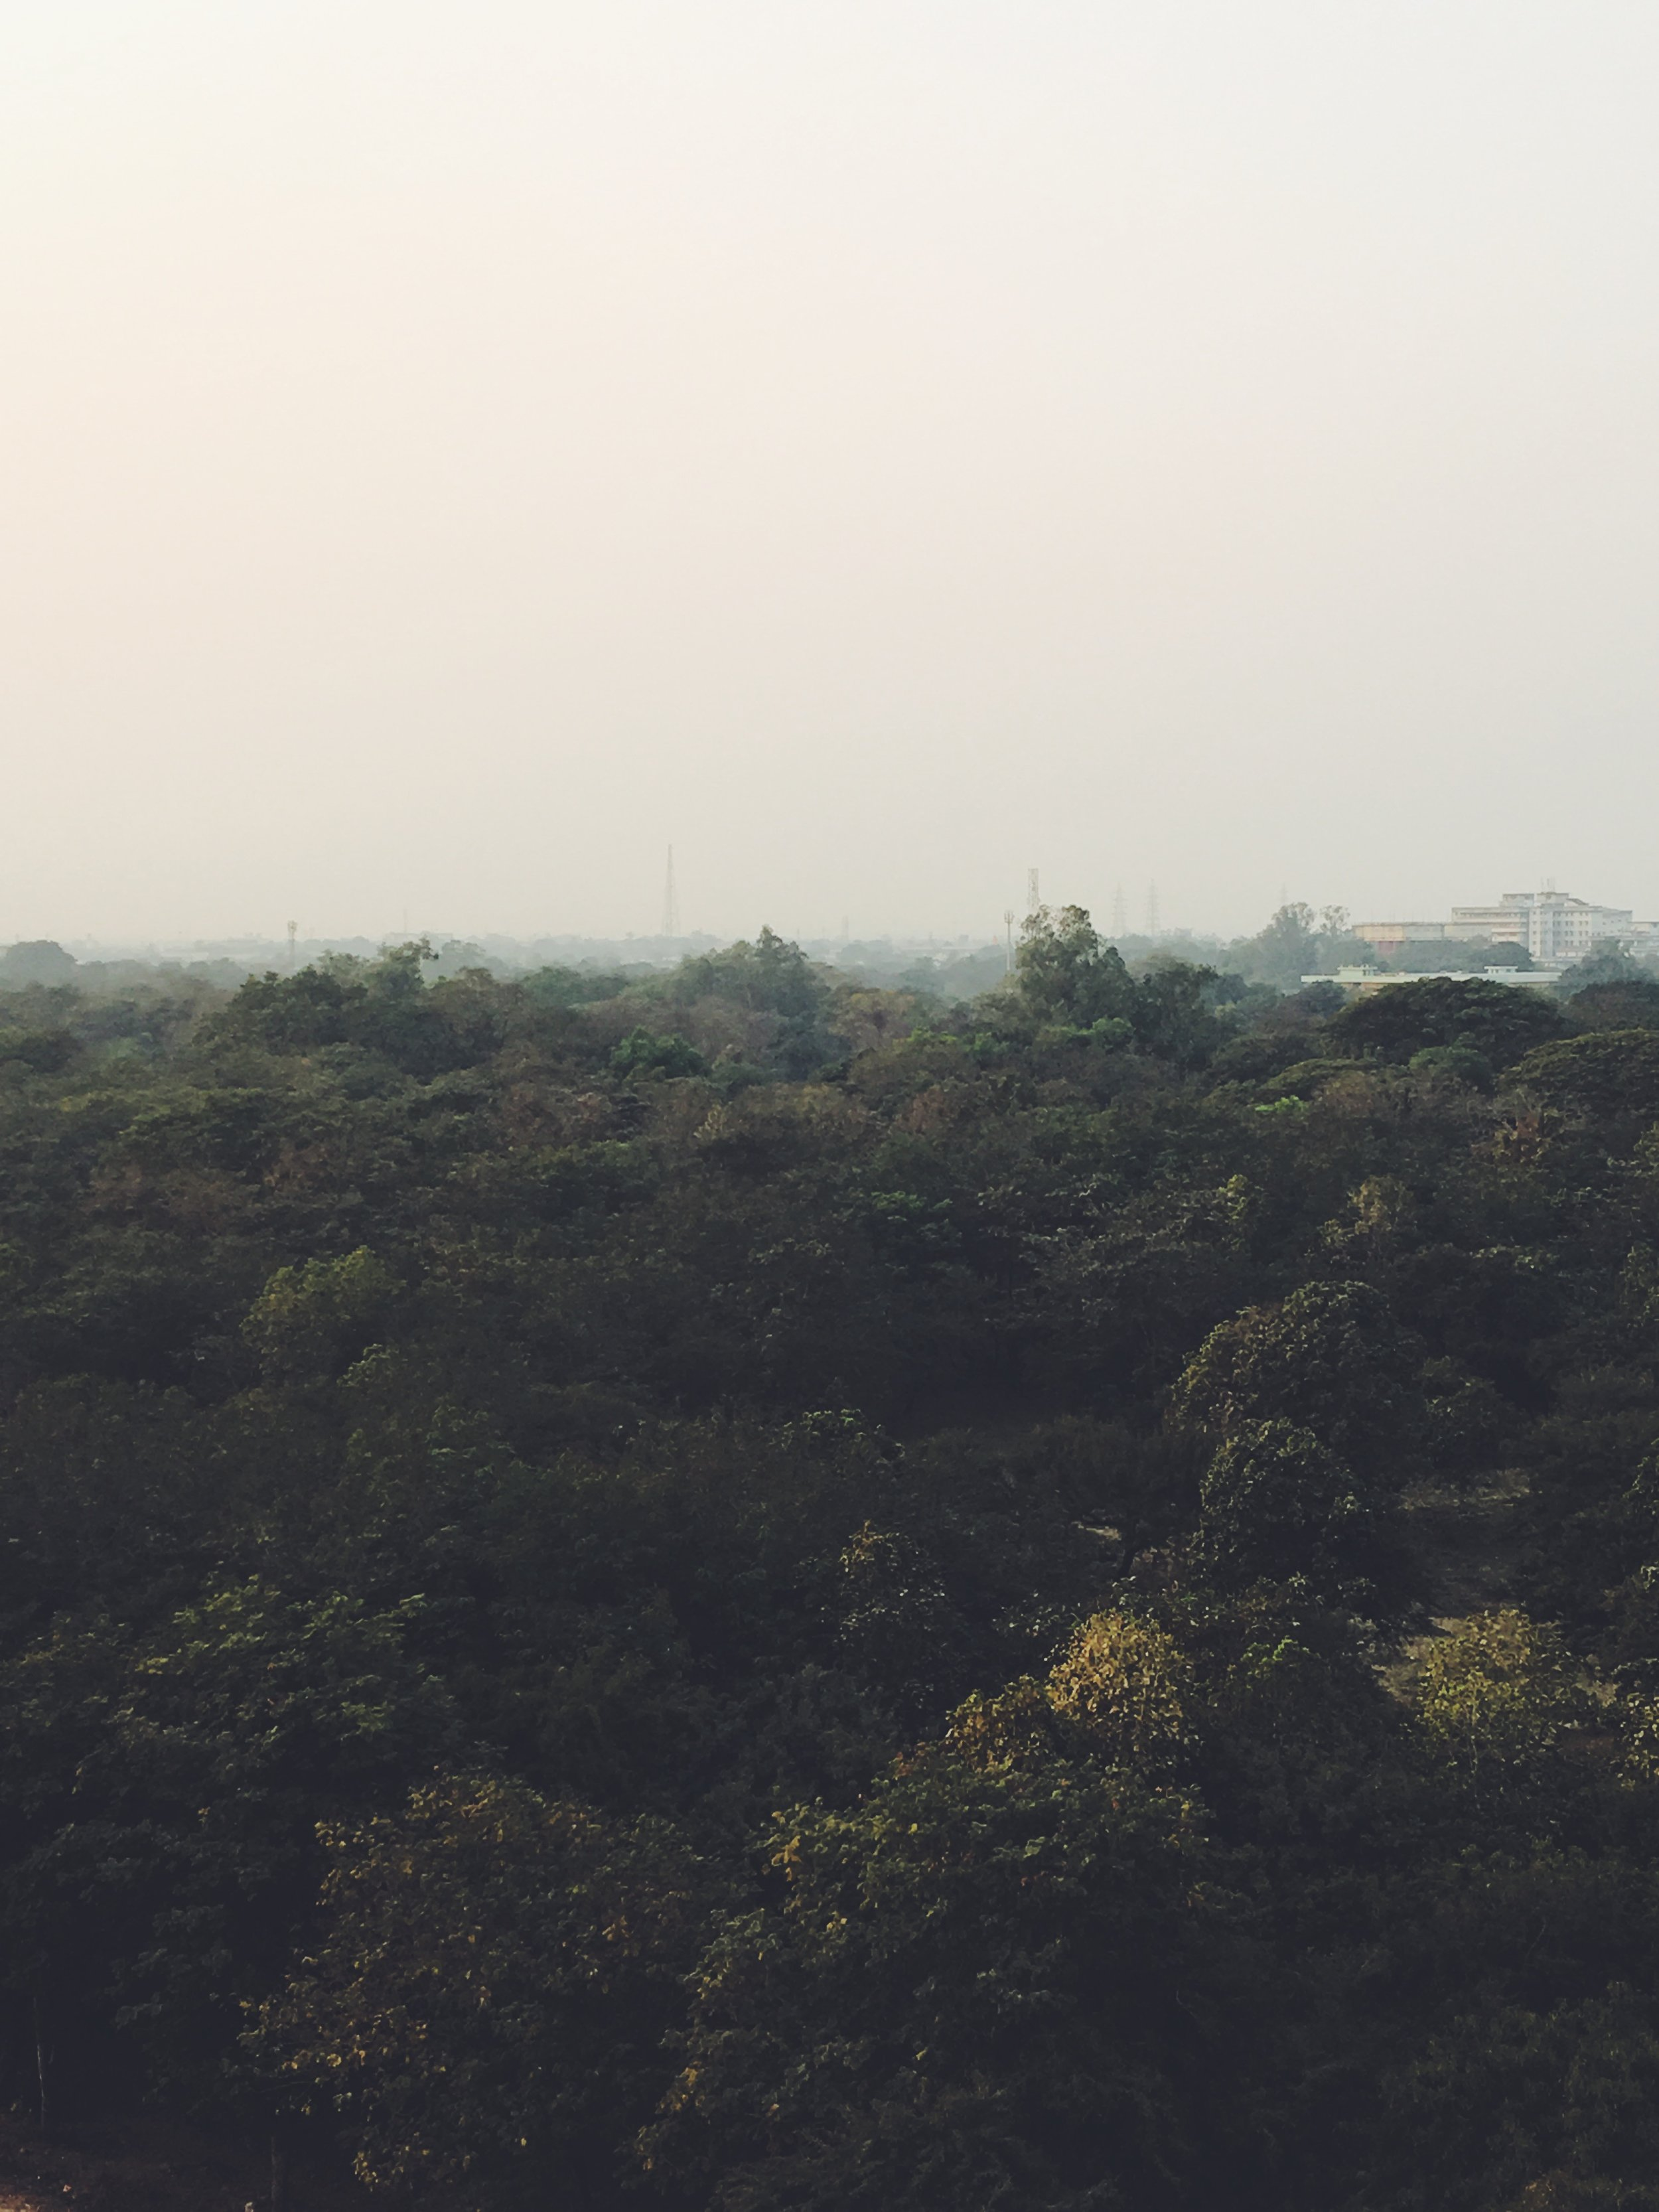 Despite being a steel plant town, Bhilai is filled with lush greenery.